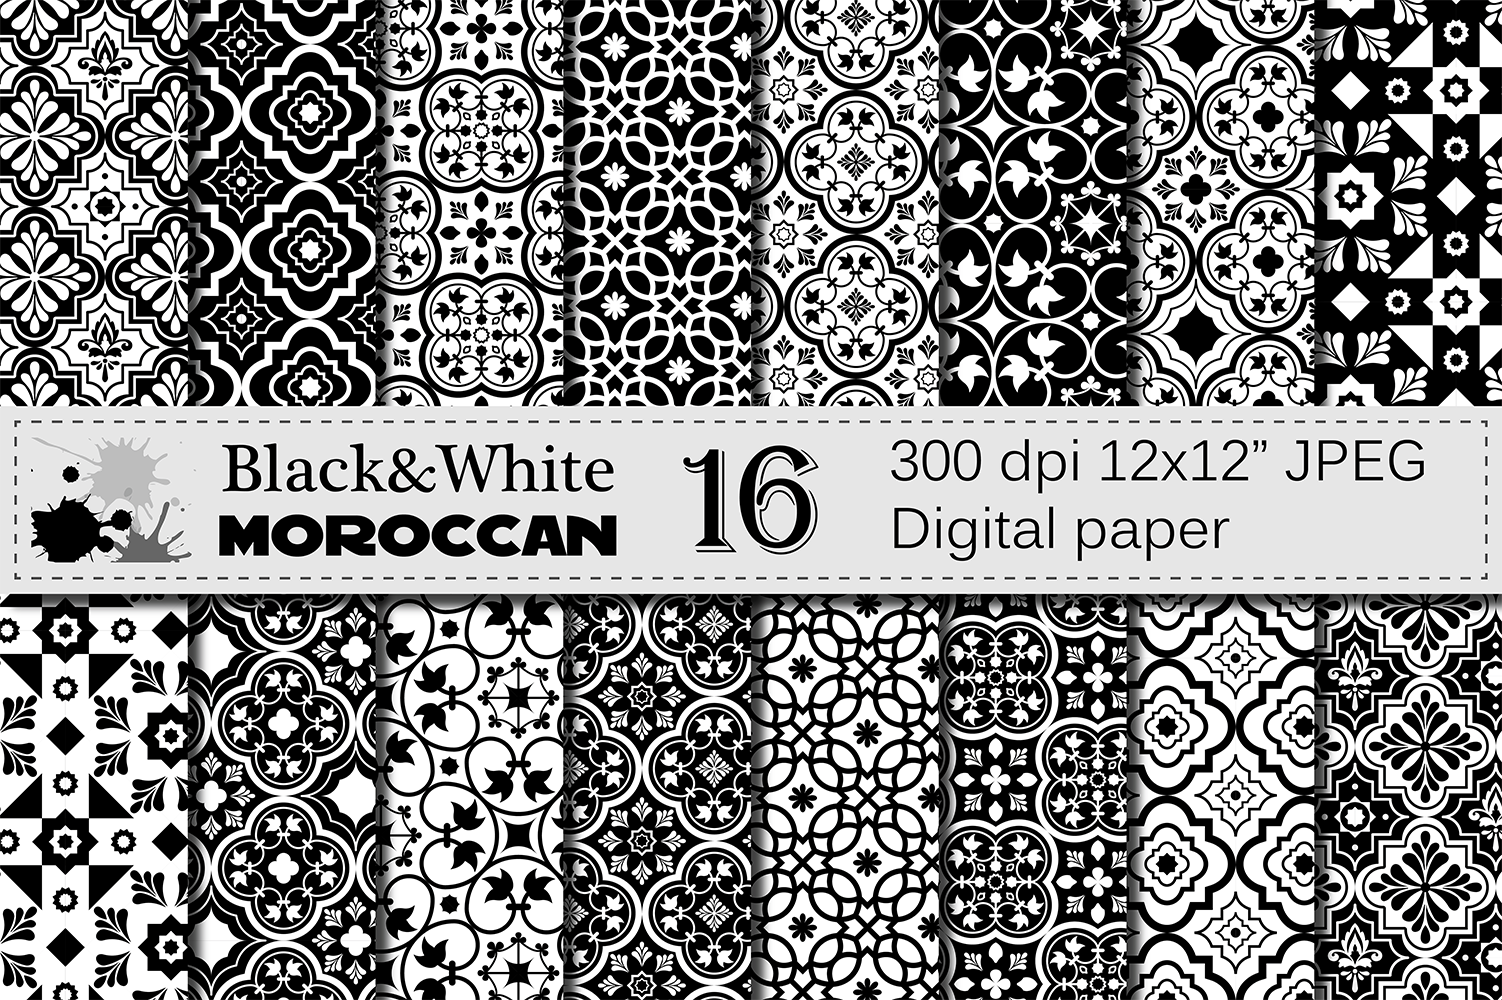 Black and White Moroccan Digital Paper Pack / Ethnic Tribal Geometric Ornamental Digital papers / Moroccan backgrounds / Scrapbooking paper example image 1